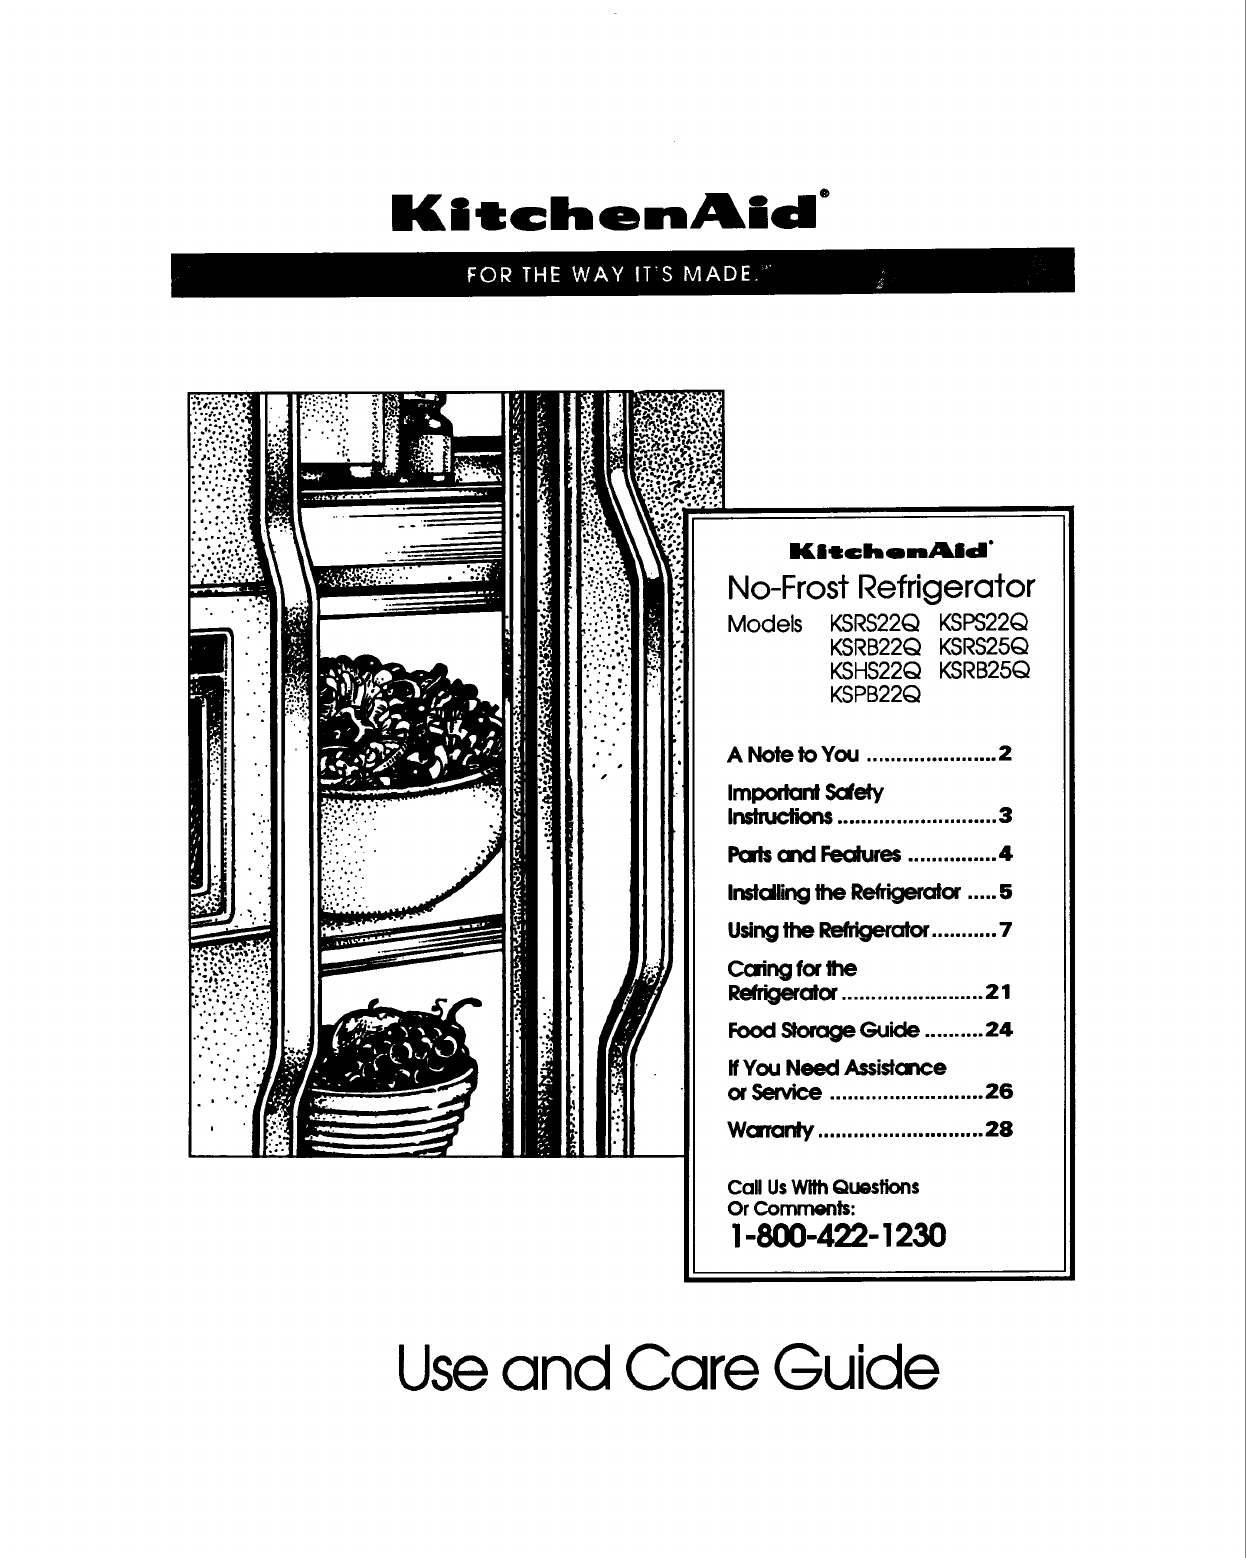 kitchenaid refrigerator ksrs25q user guide manualsonline